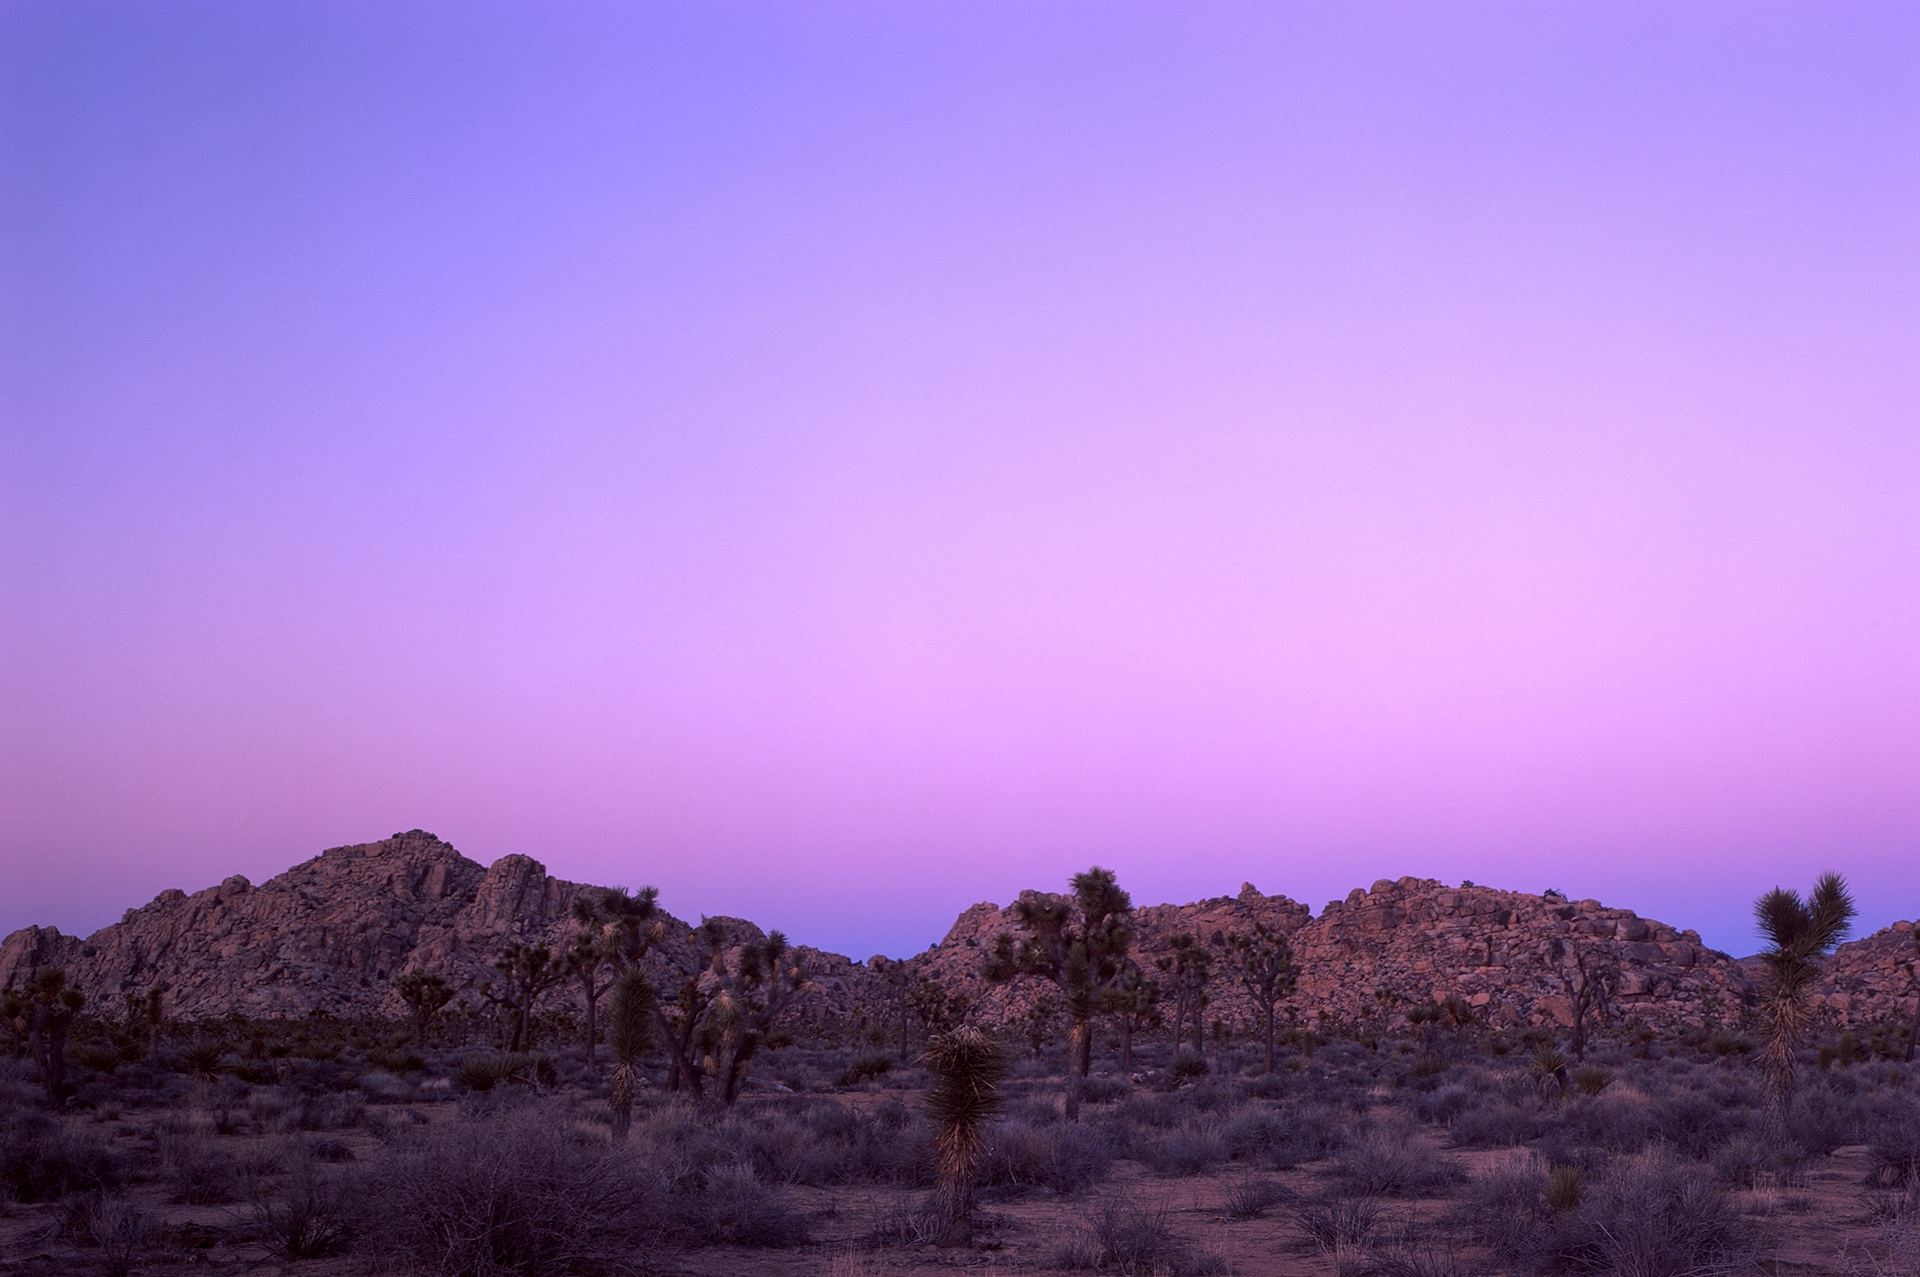 Skies rapidly turning pink in Joshua Tree National Park